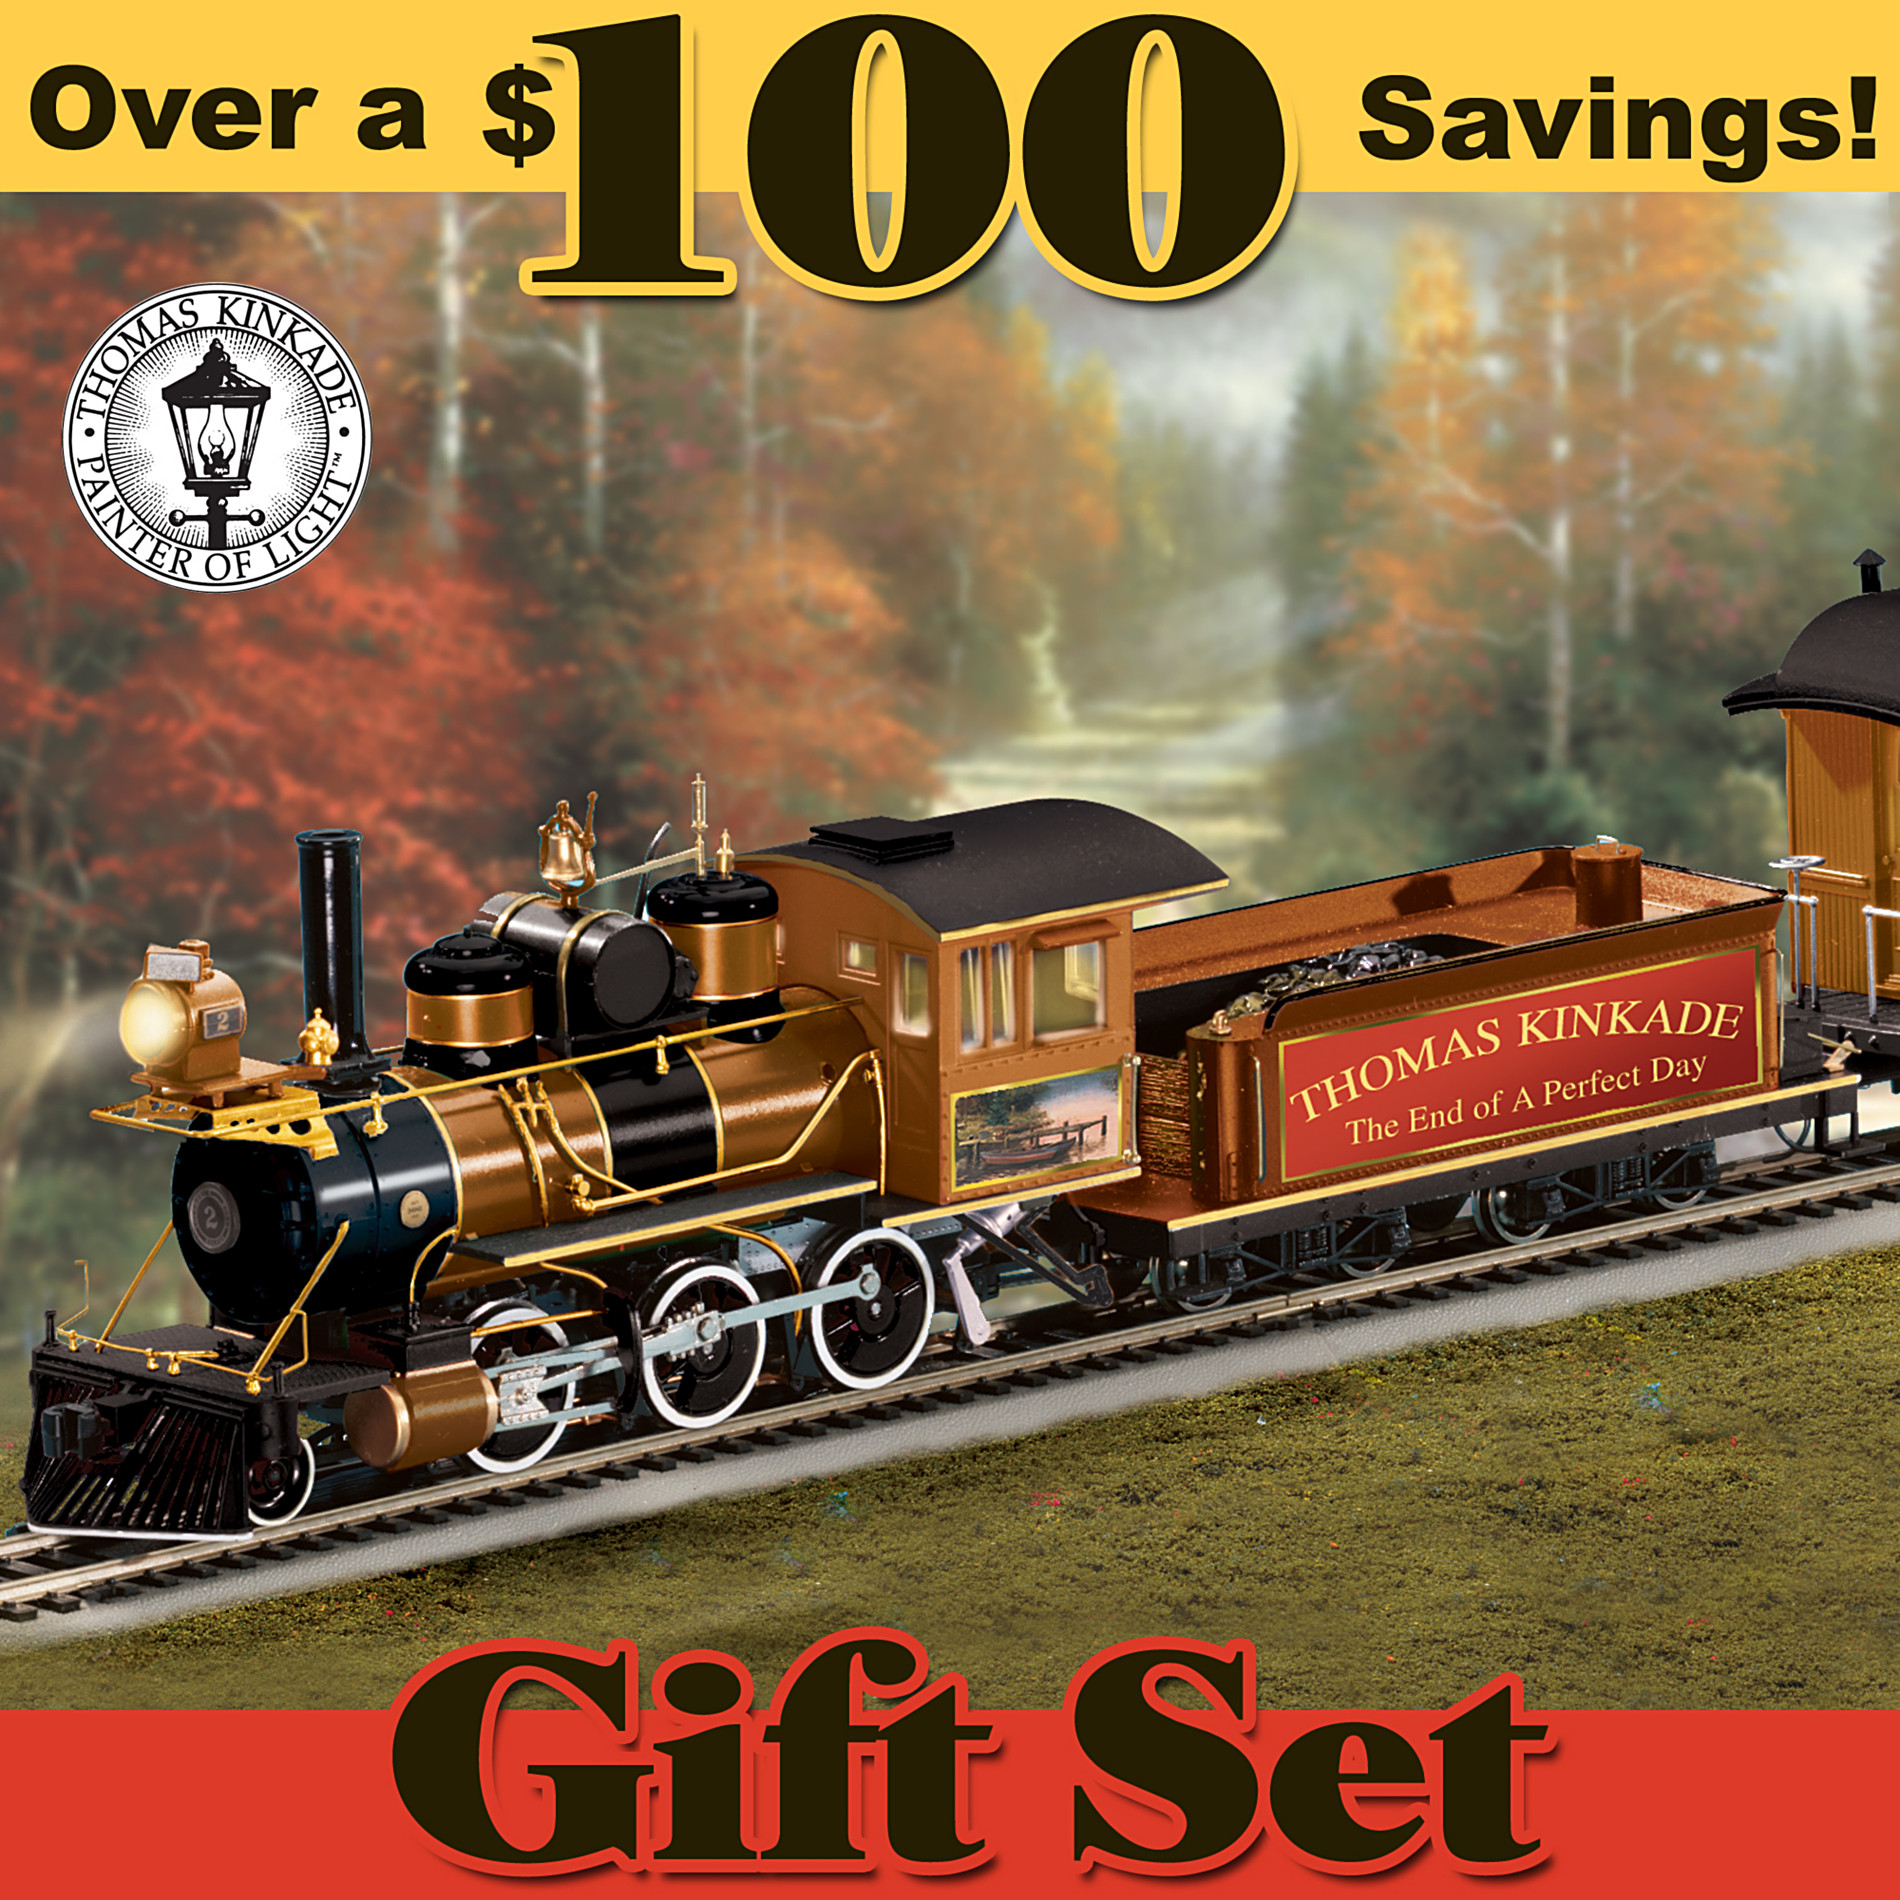 Hawthorne Village End Of A Perfect Day Express: Collectible Thomas Kinkade Train Set at Sears.com